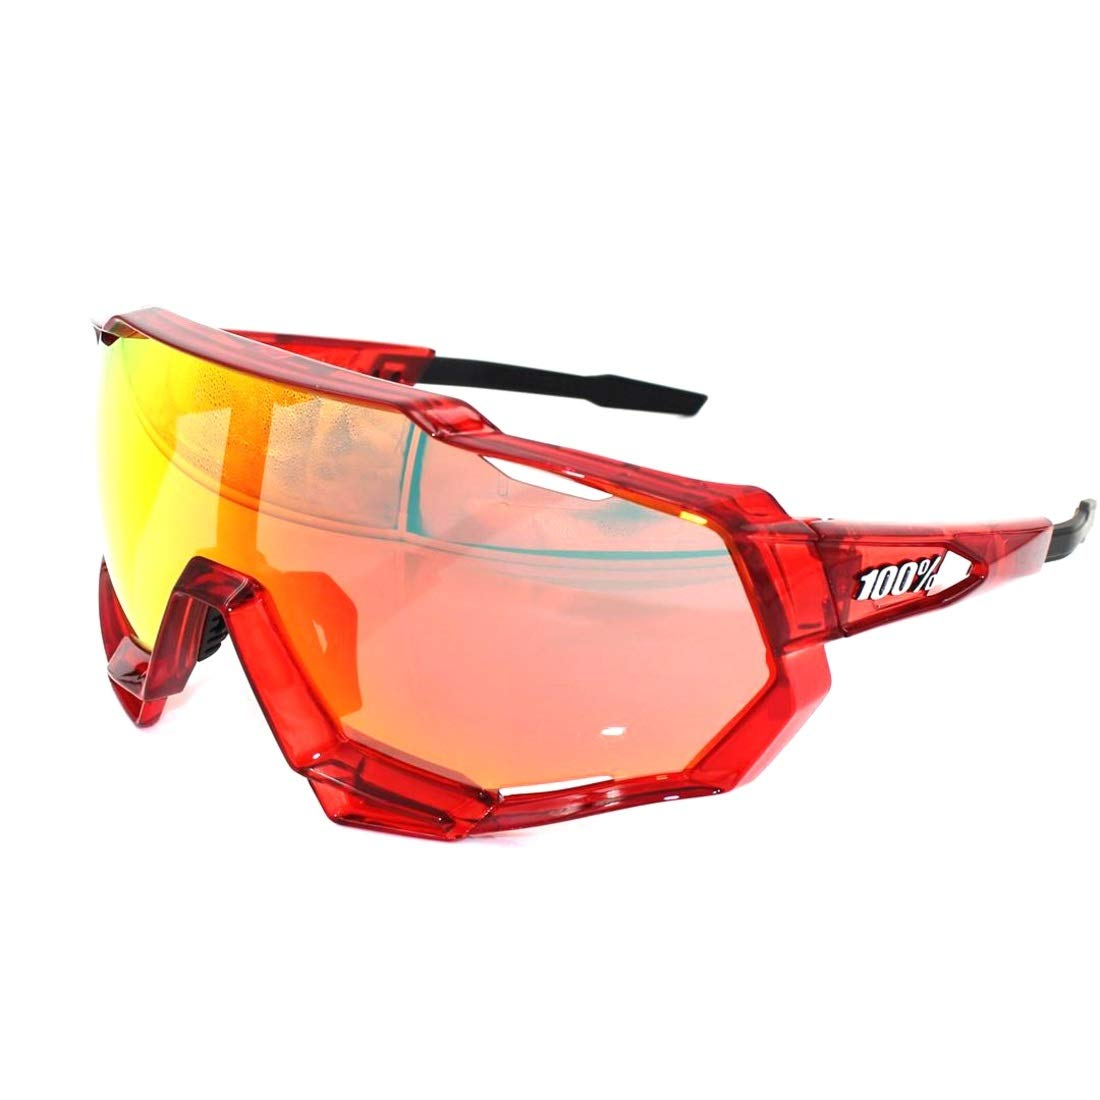 BAOYIT Outdoor Riding Wind and Sandproof Glasses for Men and Women Riding Equipment (Color : F) by BAOYIT